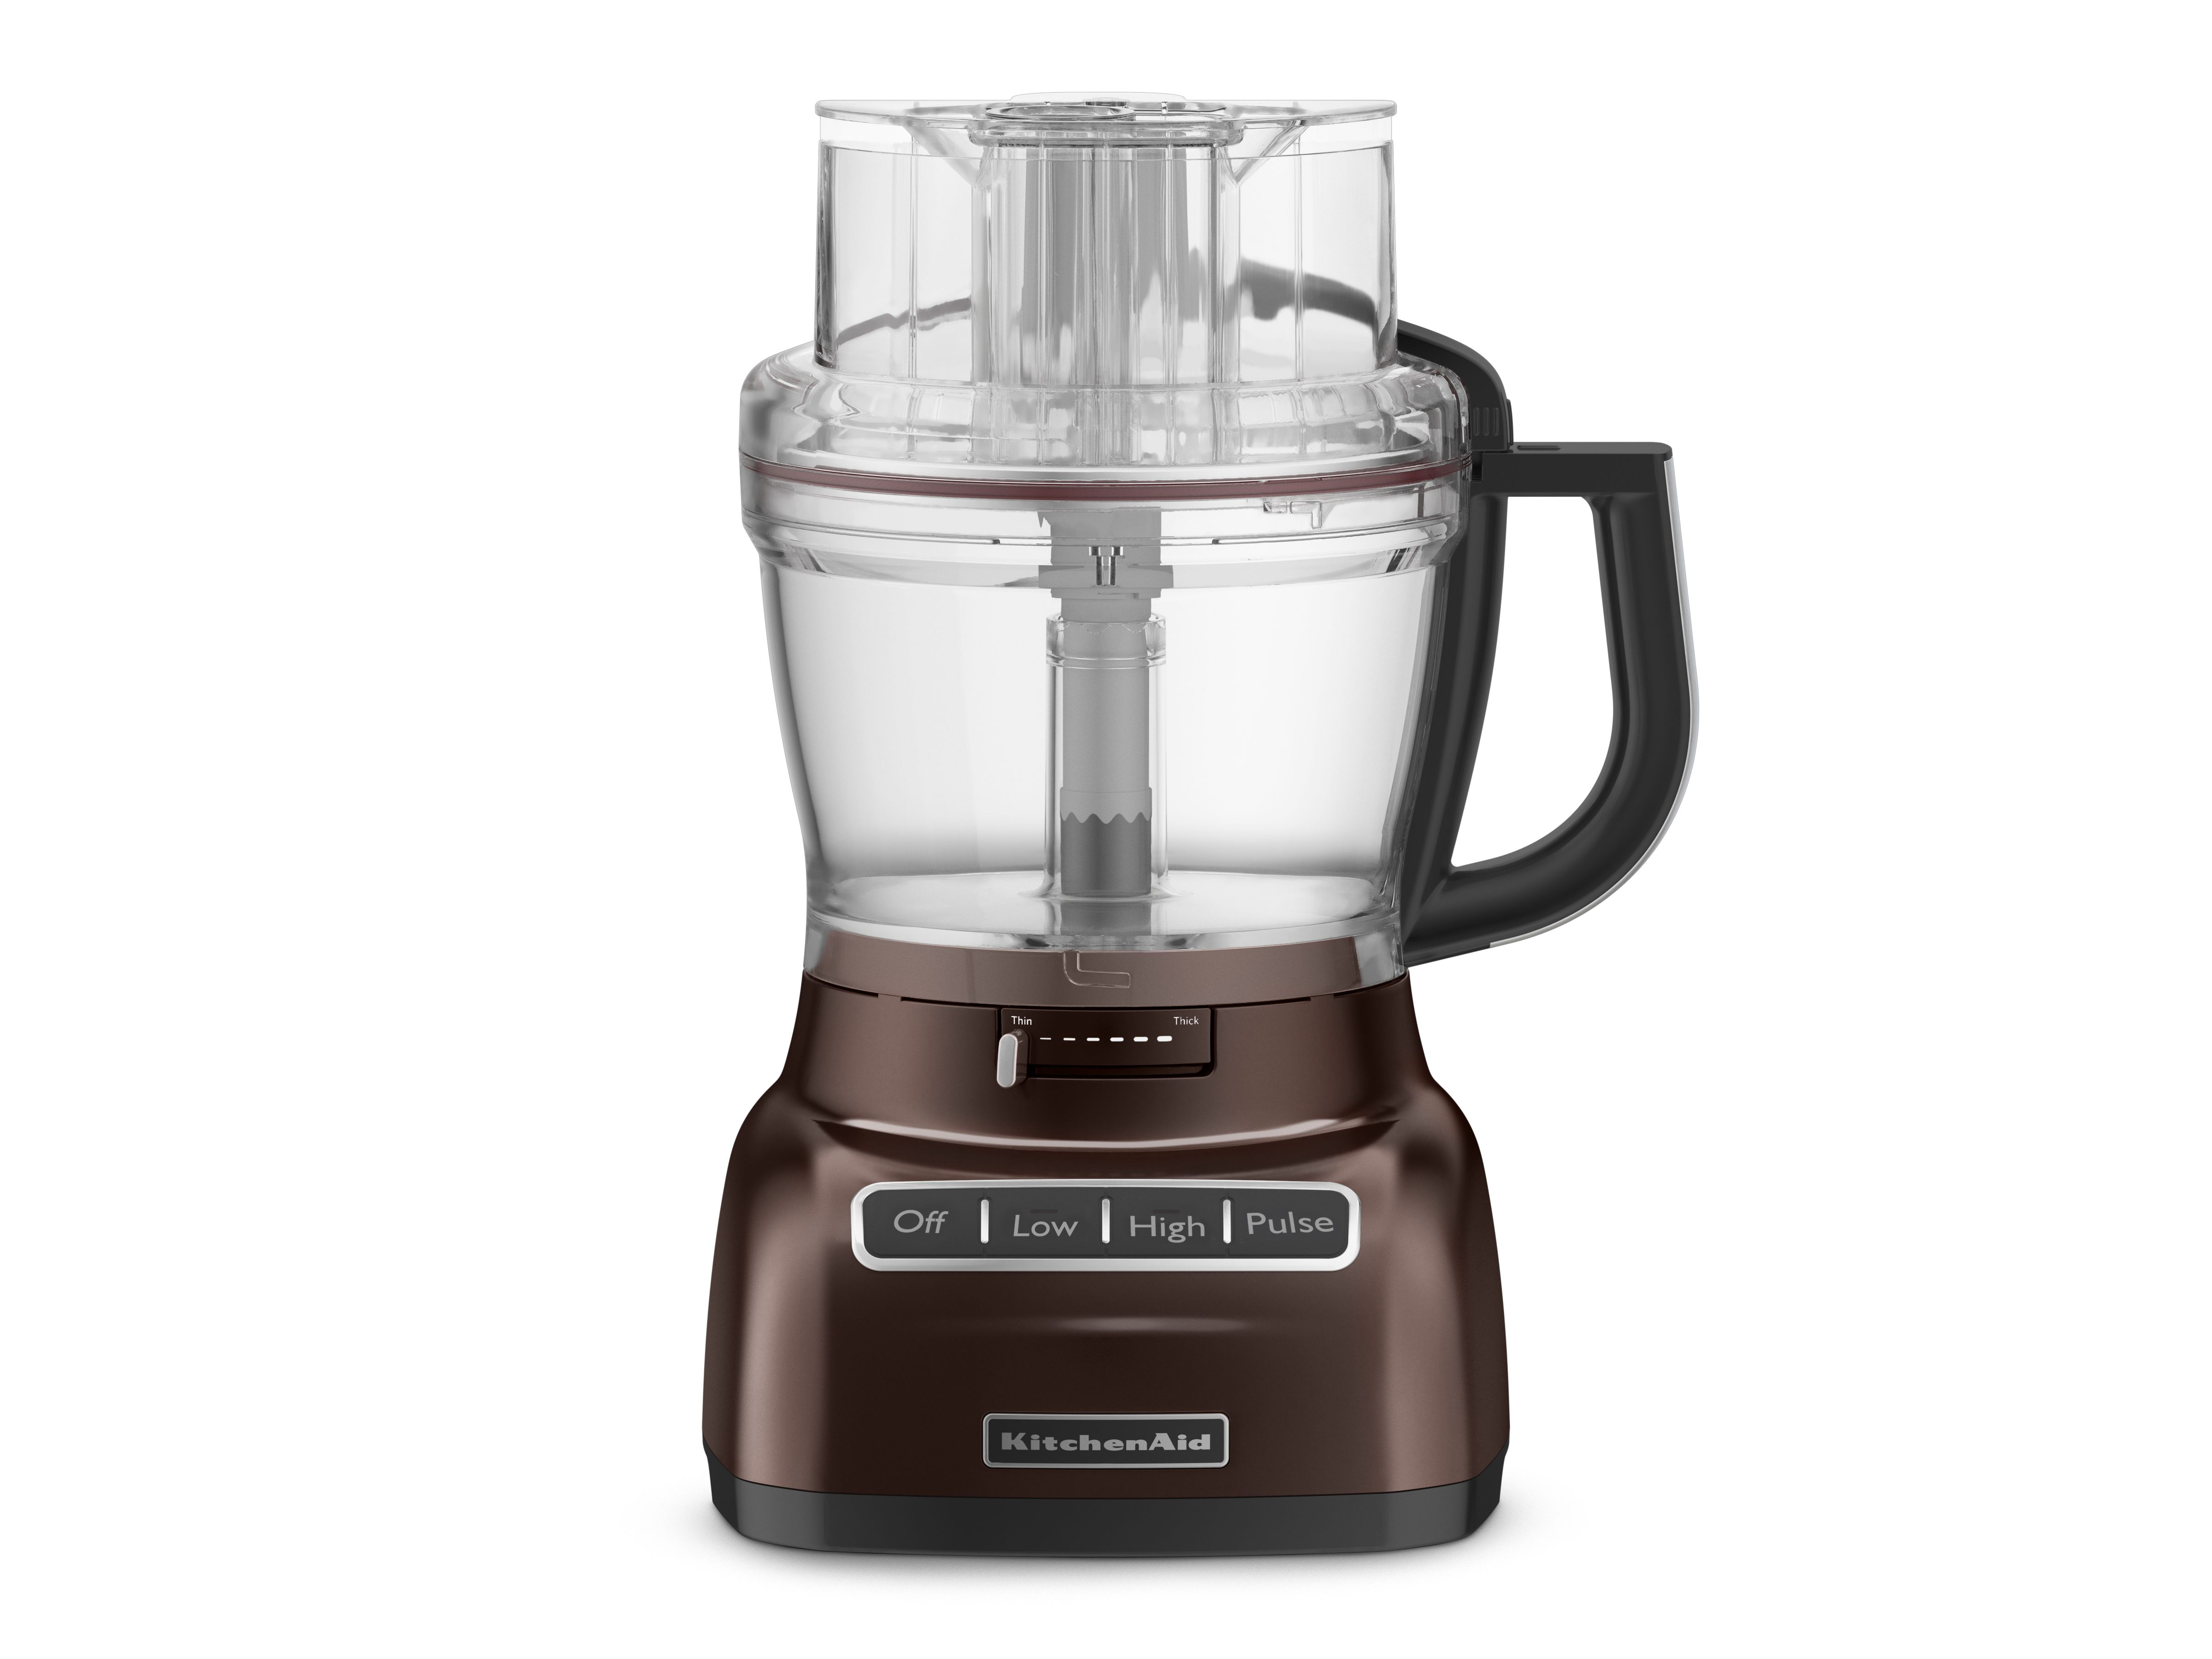 KitchenAid's new 13-cup food processor has a die cast metal design and is shown here in a new Espresso color.